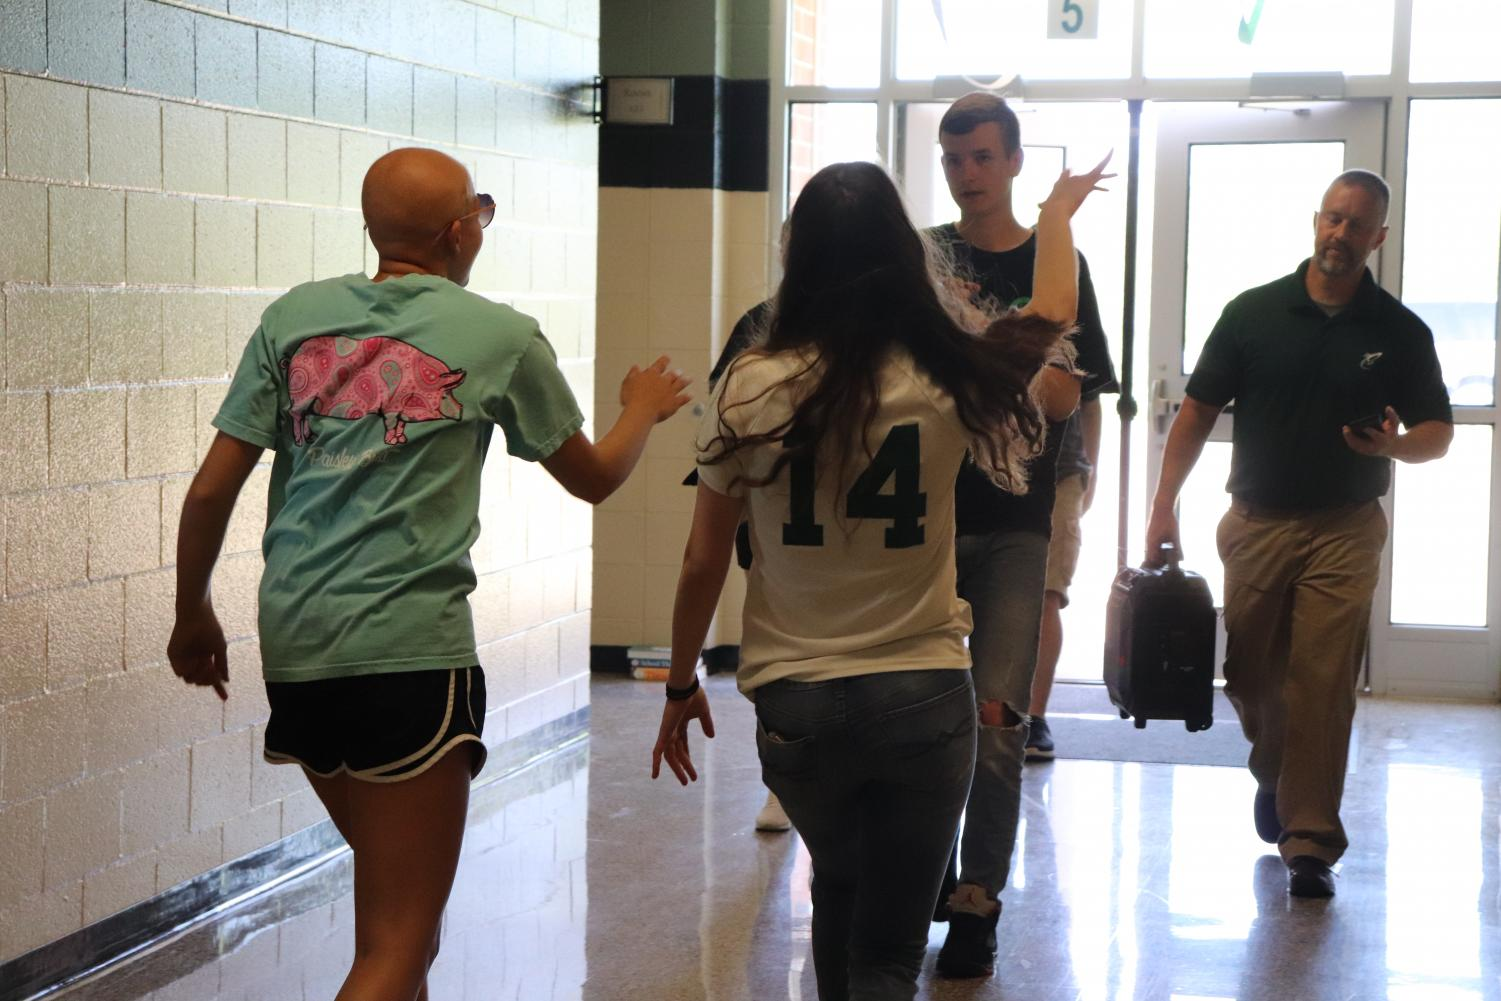 Cass Martin (12) and Hannah Kimmel (11) lip sync their portion of the Lip Dub project as Austin Thomas (10) films and Mr. Kevin Gustafson (Faculty) carries a speaker with the music.